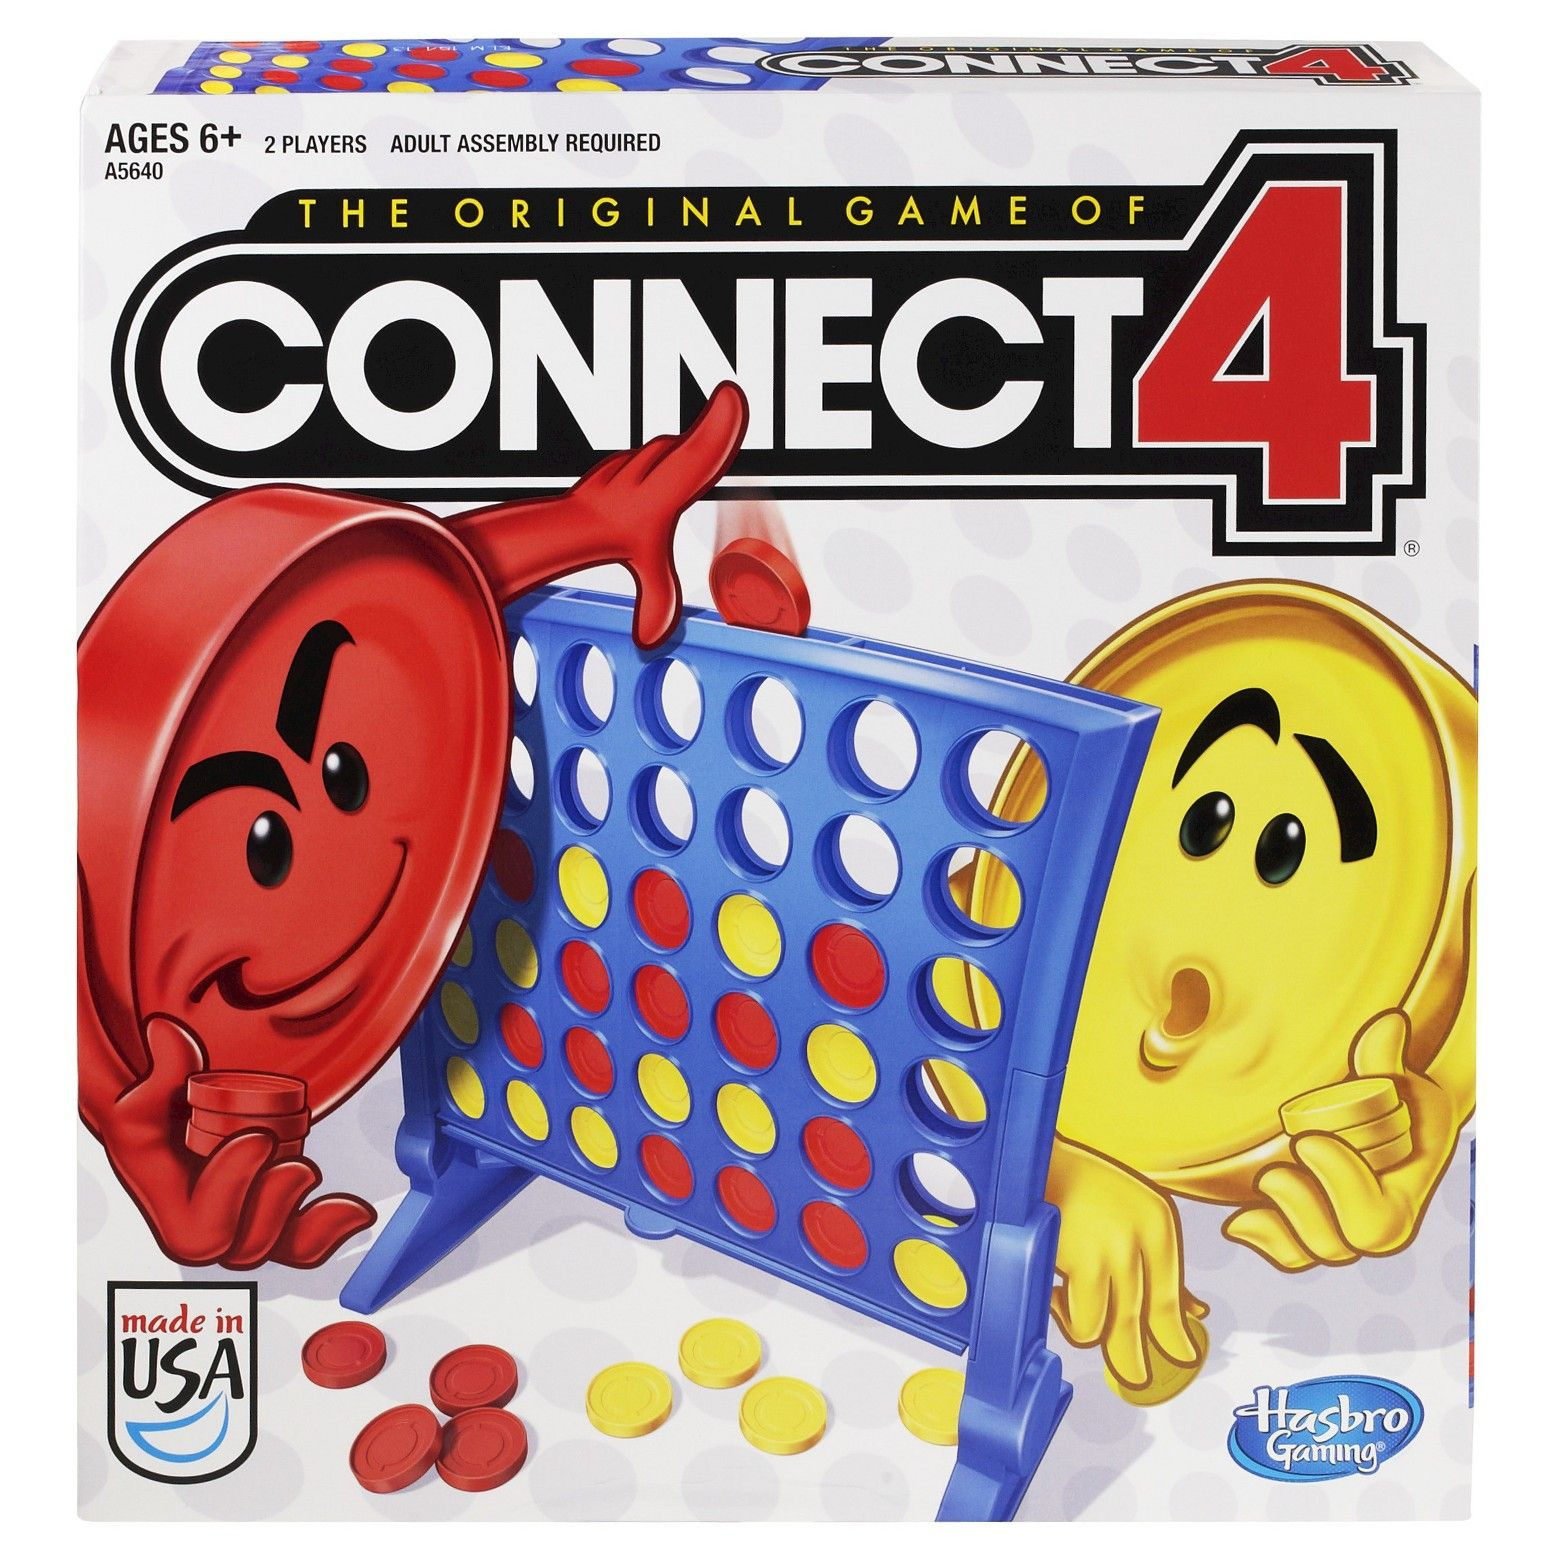 Connect 4 Game Connect 4 board game, Games for kids